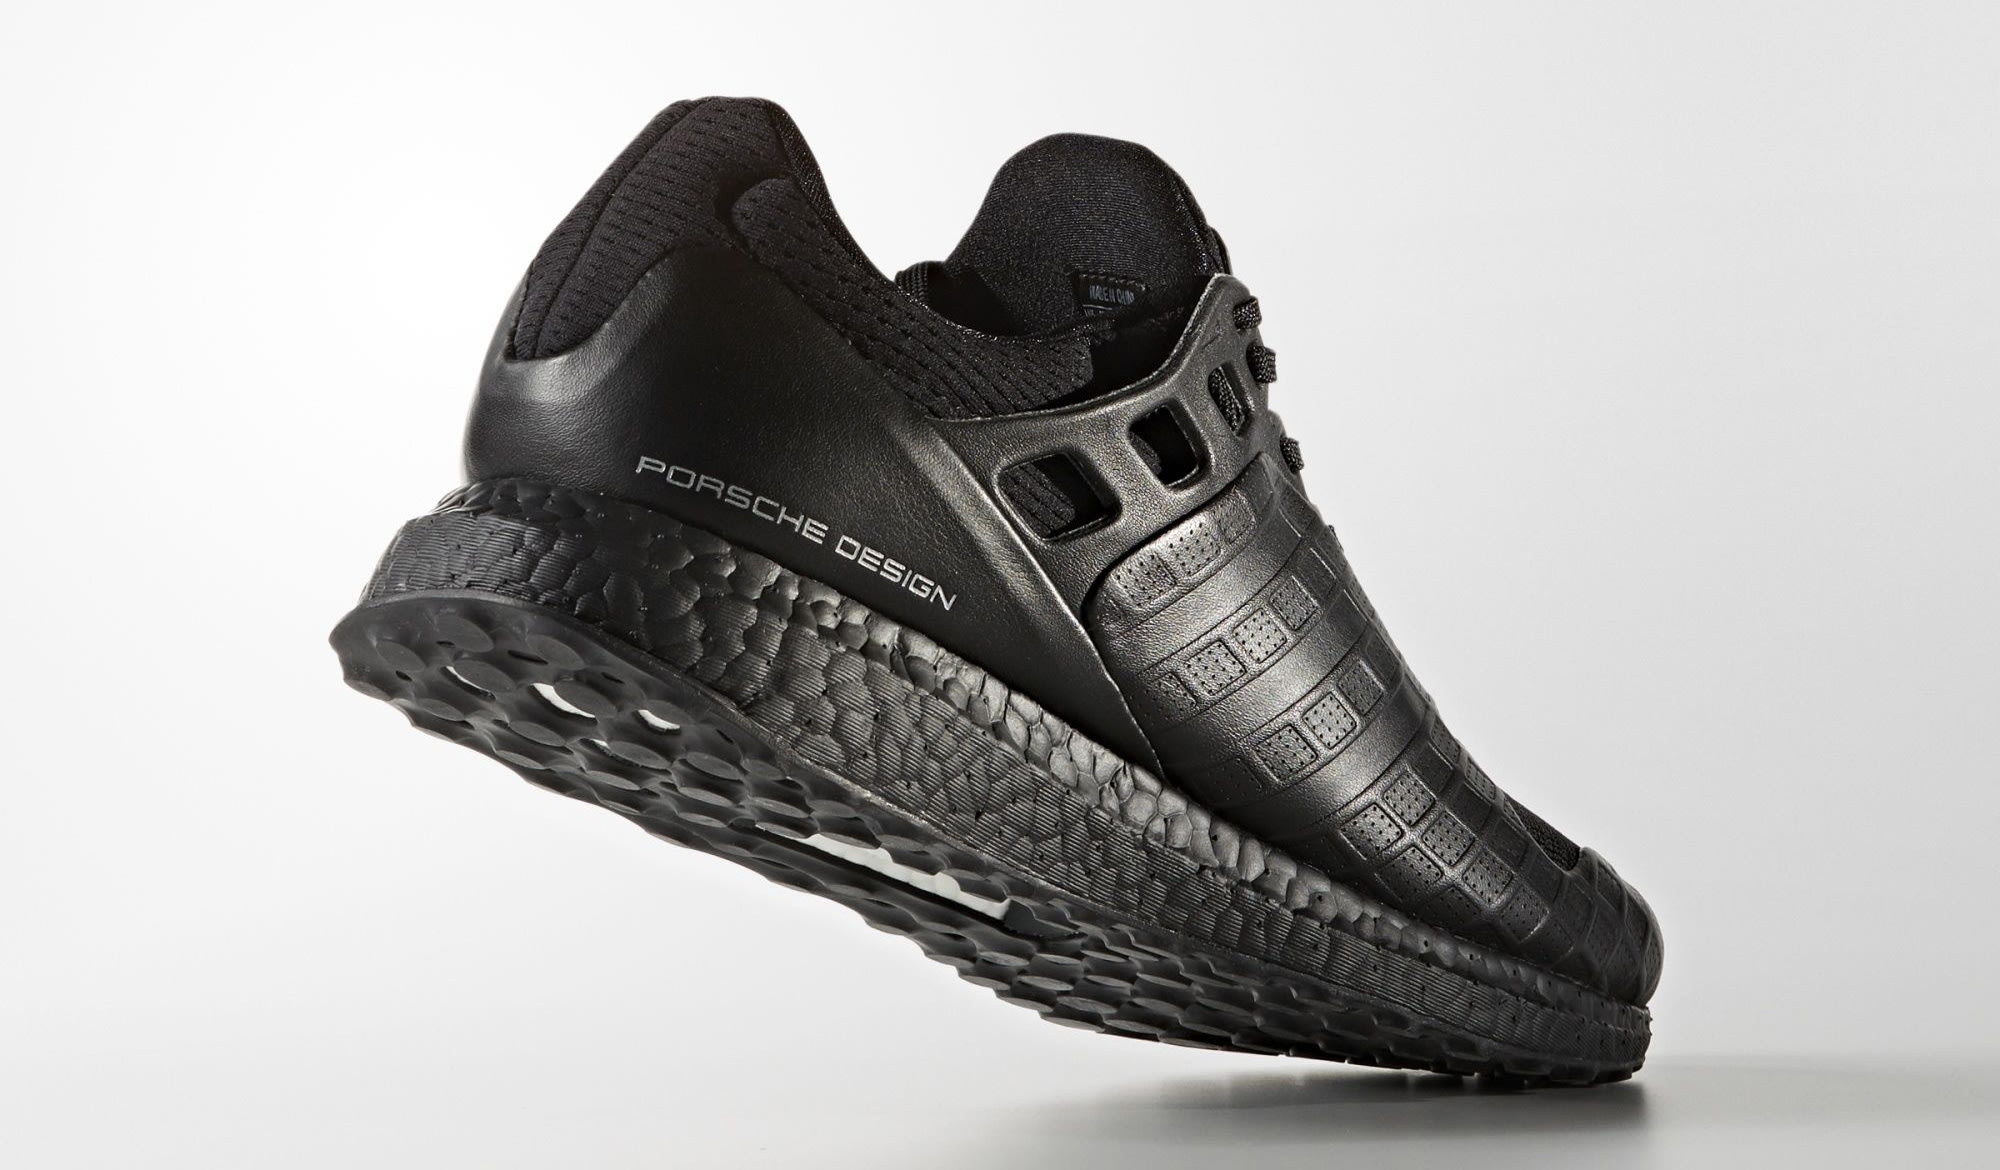 Triple Black Porsche Adidas Ulta Boost BB5537 Heel